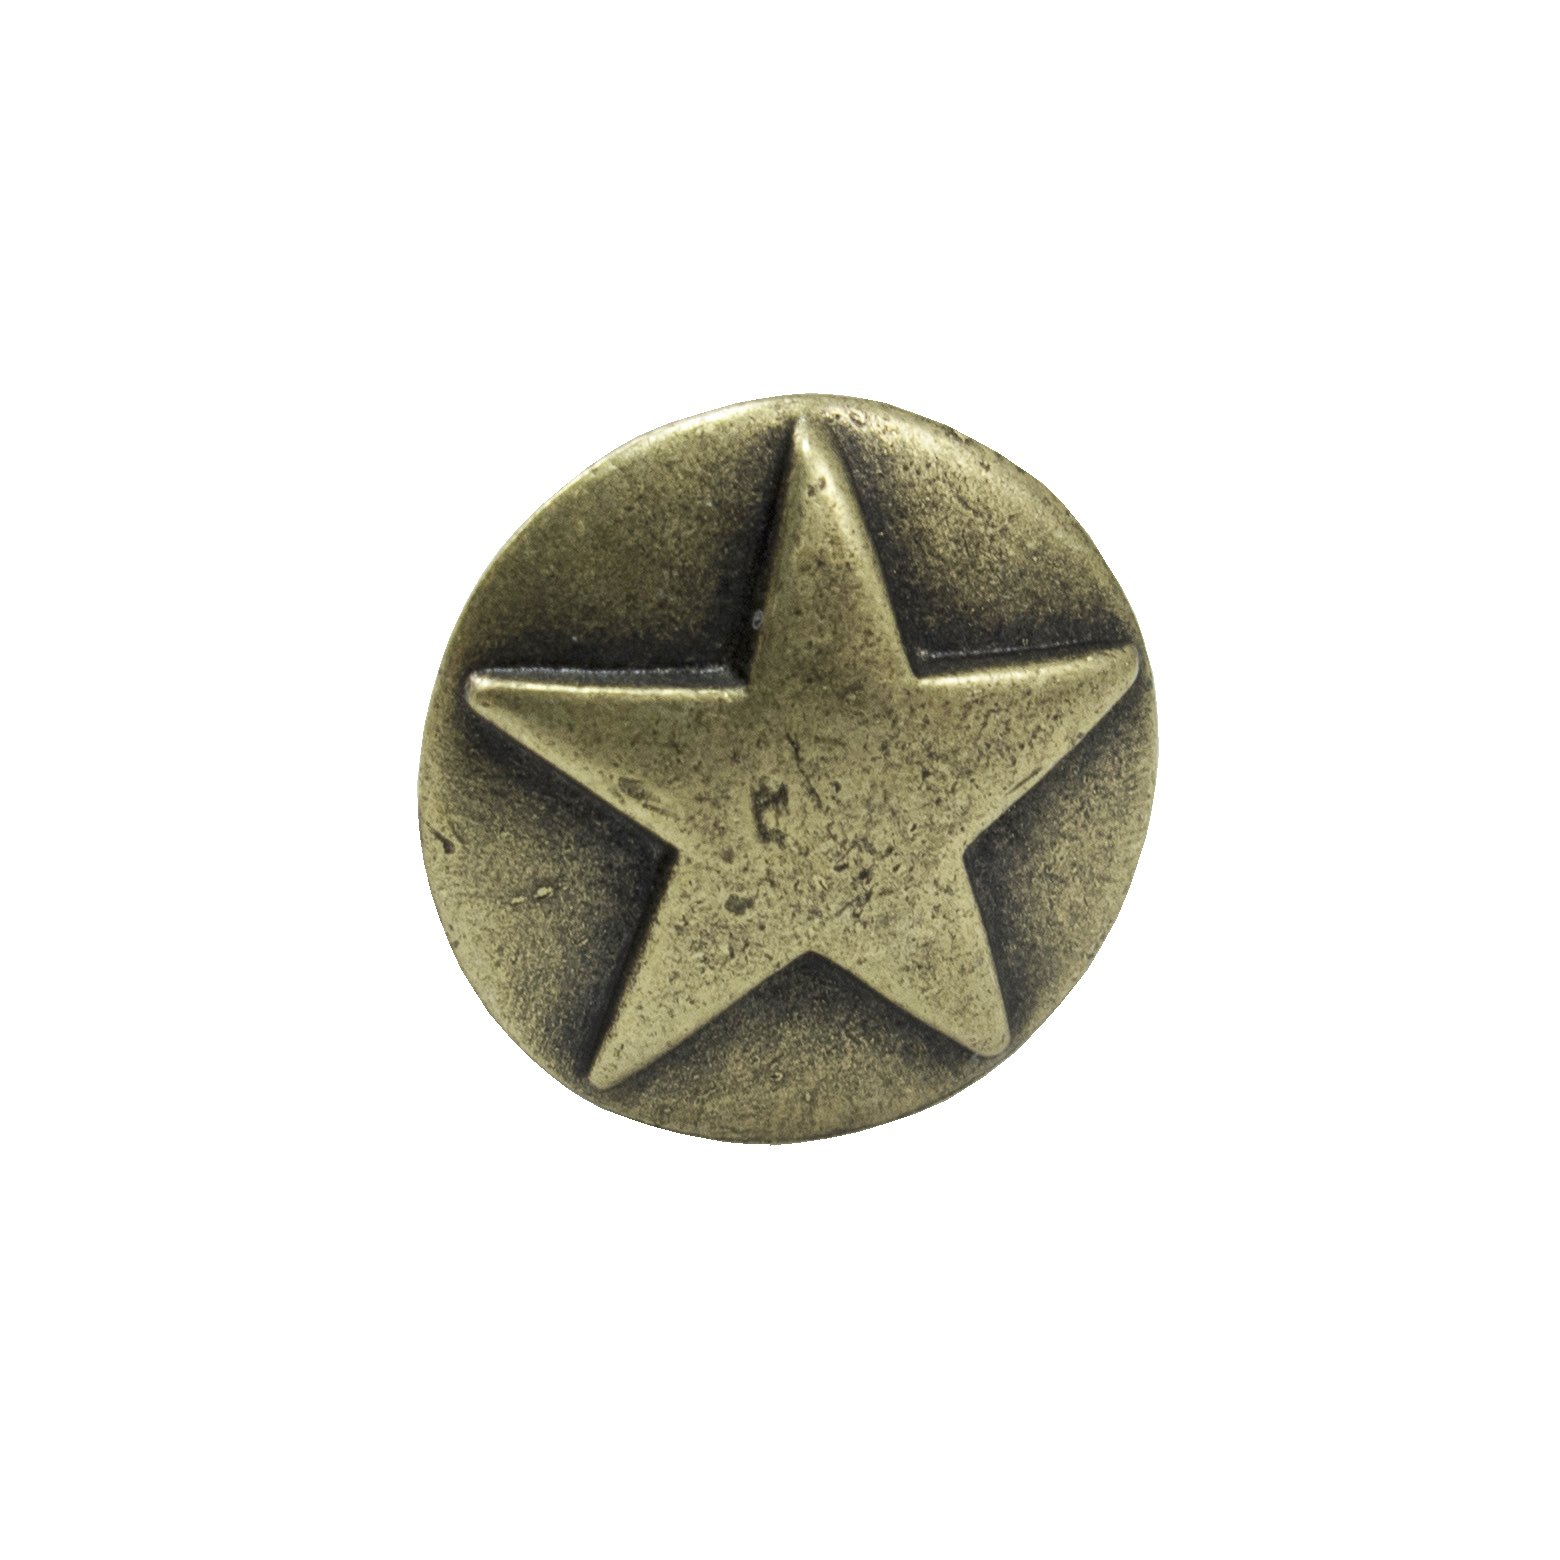 Springfield Leather Company Antique Brass Star Medallion Upholstery Tack 50 Pack by Springfield Leather Company (Image #1)